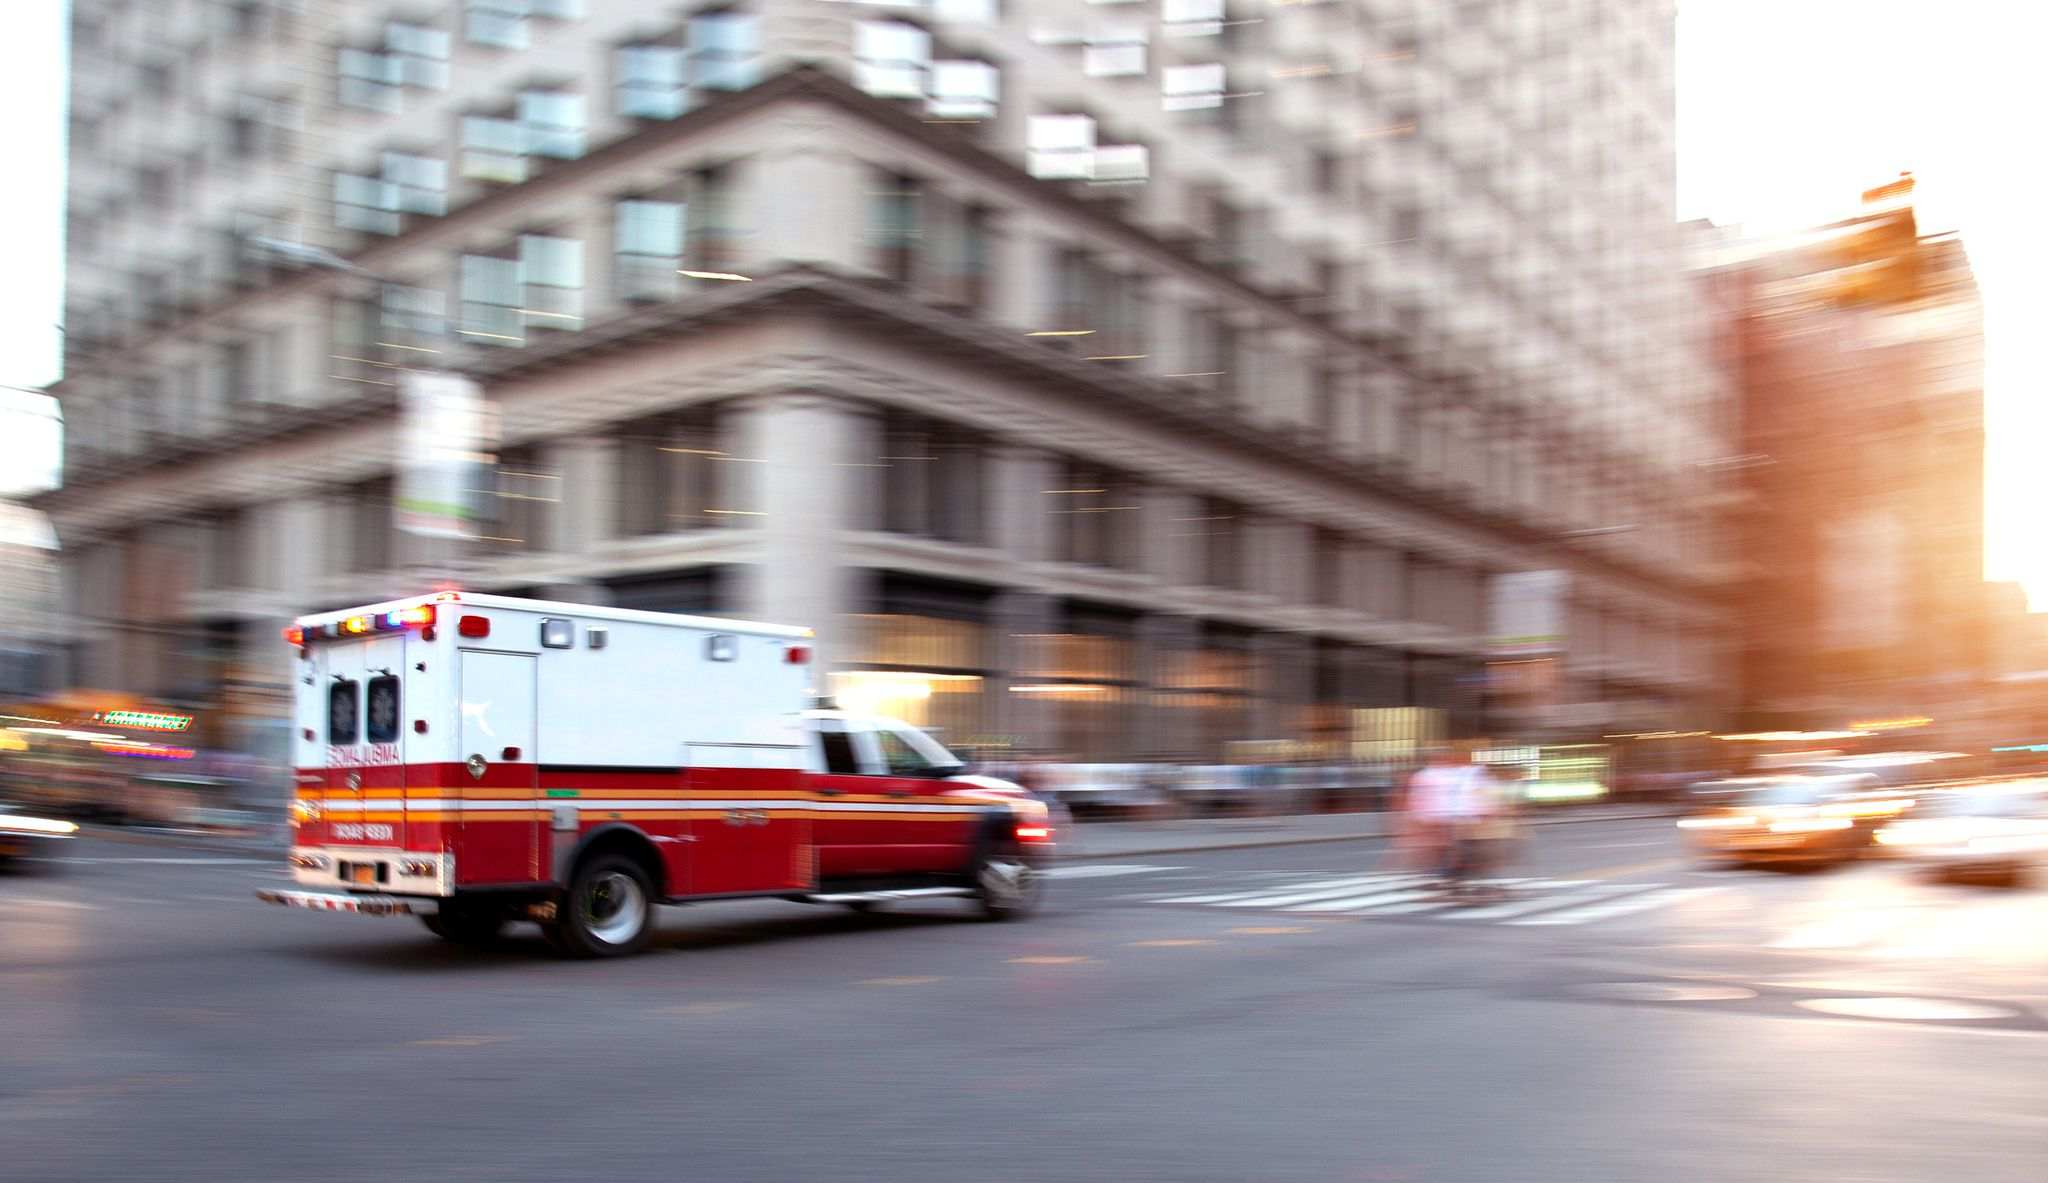 An ambulance responding to an emergency | Photo: Getty Images